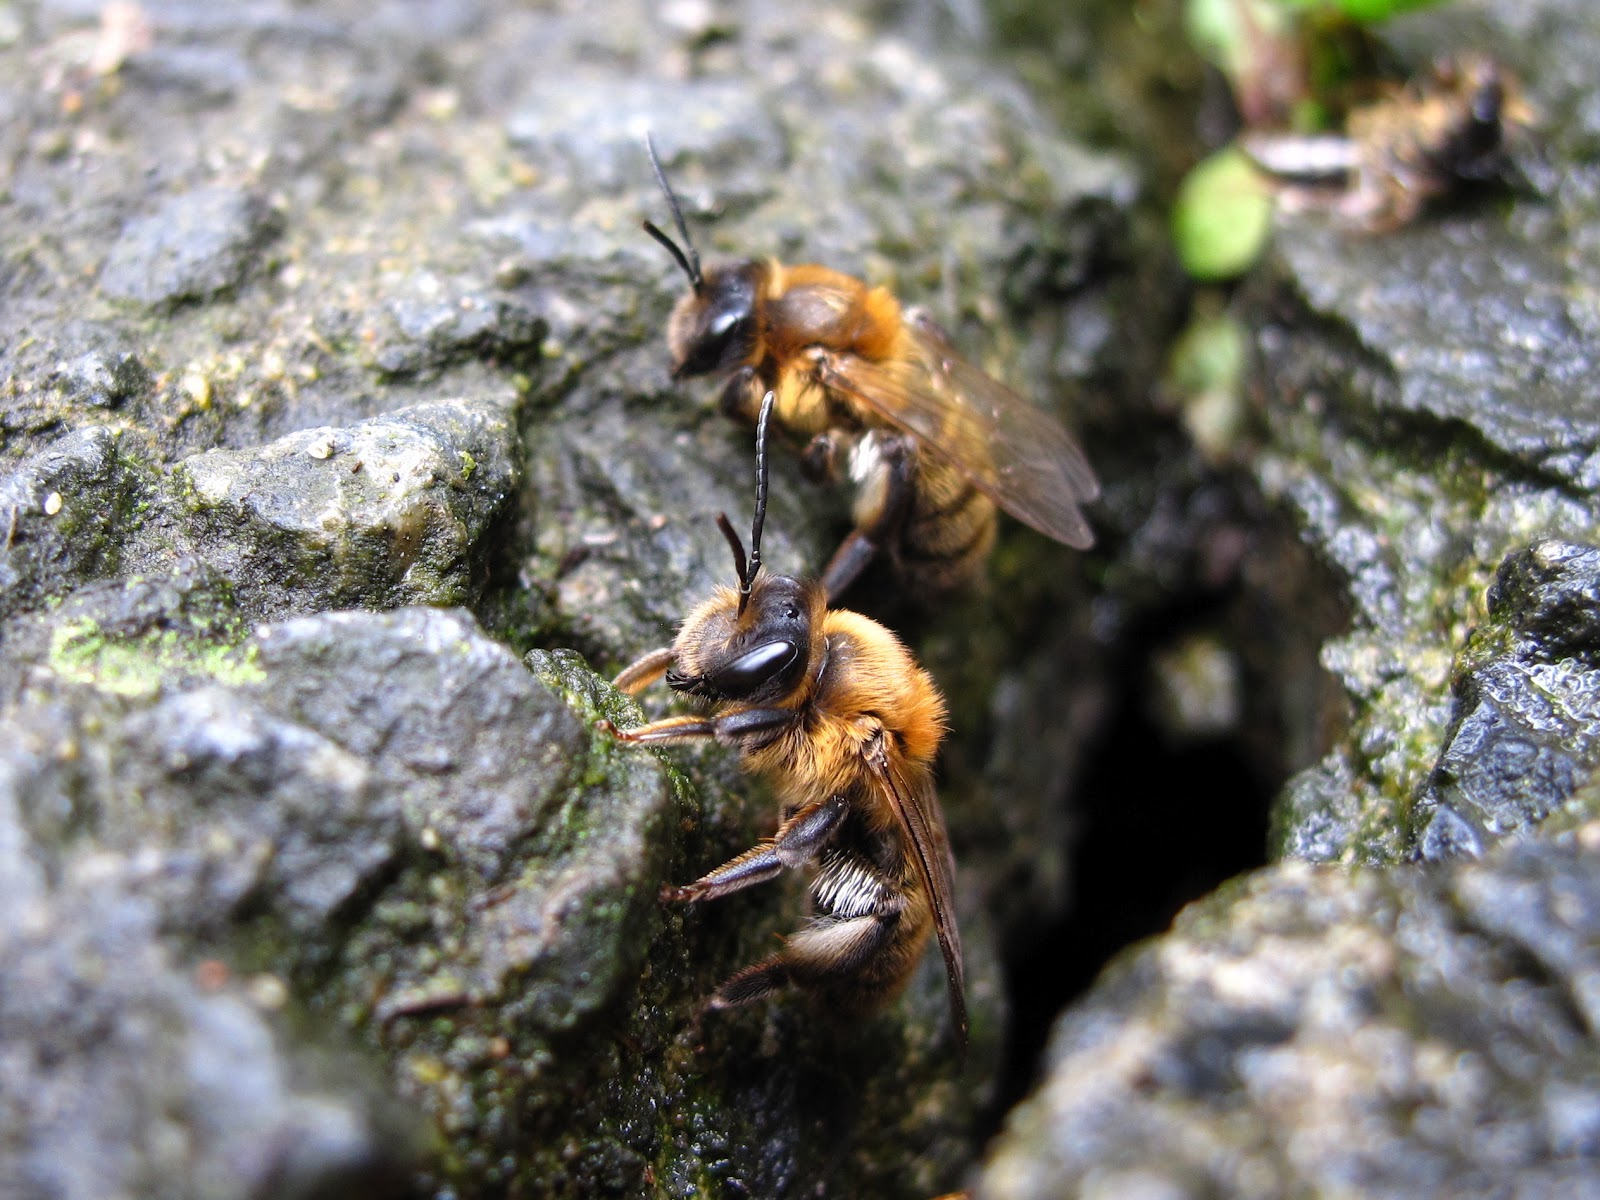 A Few Years Ago In The Concrete Path At Front Of Our House Became Busy With Bees Coming And Out We Umed They Were Honeybees That Had